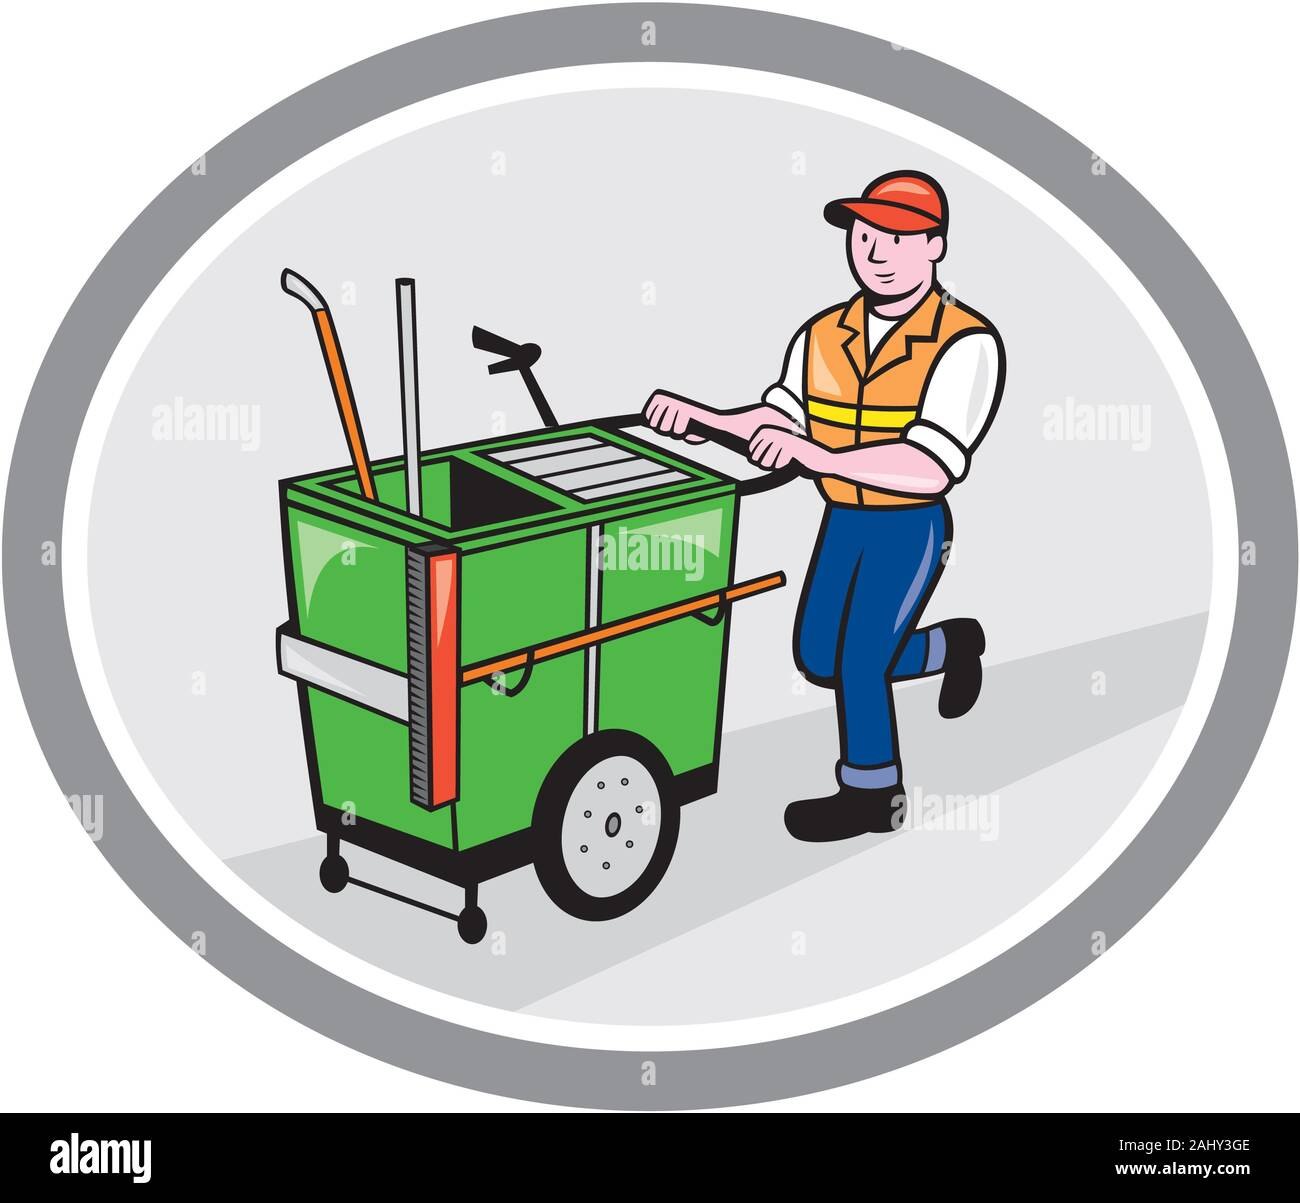 Illustration of a street cleaner worker pushing a cleaning trolley viewed from front set inside an oval circle on isolated background done in cartoon Stock Photo